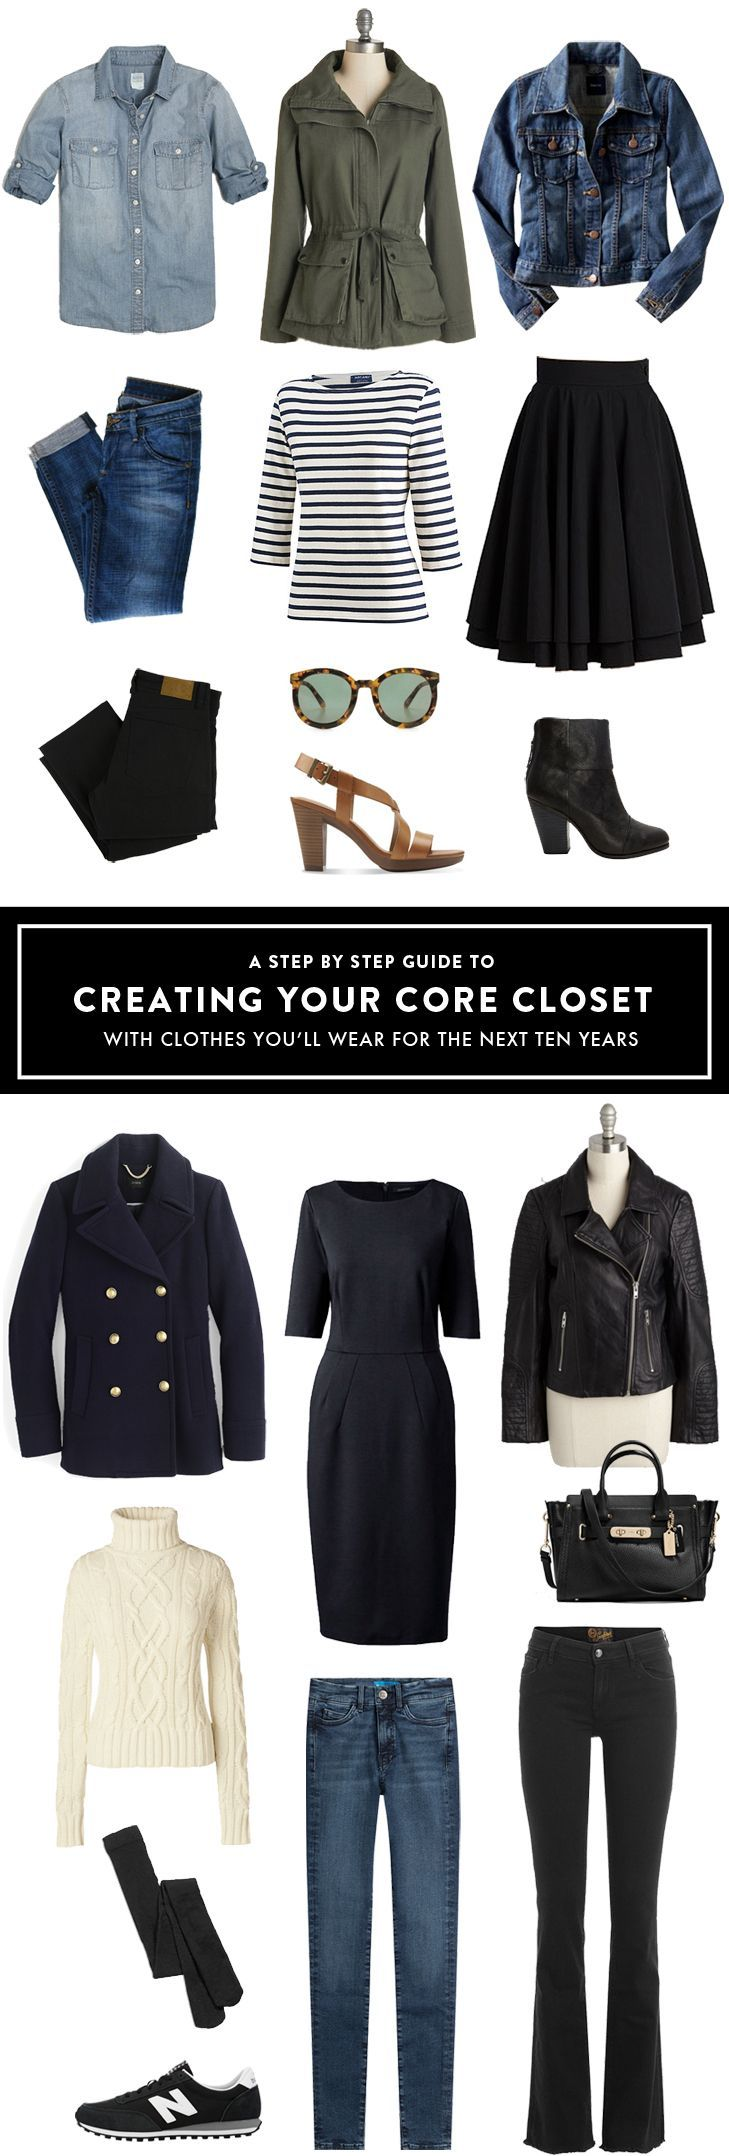 Creating your Core Closet, How to Build a Wardrobe. Here's my travel wardrobe for 10 days in Japan: http://www.sewinlove.com.au/2013/03/28/10-days-japan-travel-capsule-wardrobe-%E6%97%A5%E6%9C%AC%E6%97%85%E8%A1%8C%E3%81%AE%E7%9D%80%E3%81%BE%E3%82%8F%E3%81%97%E3%82%B3%E3%83%BC%E3%83%87/